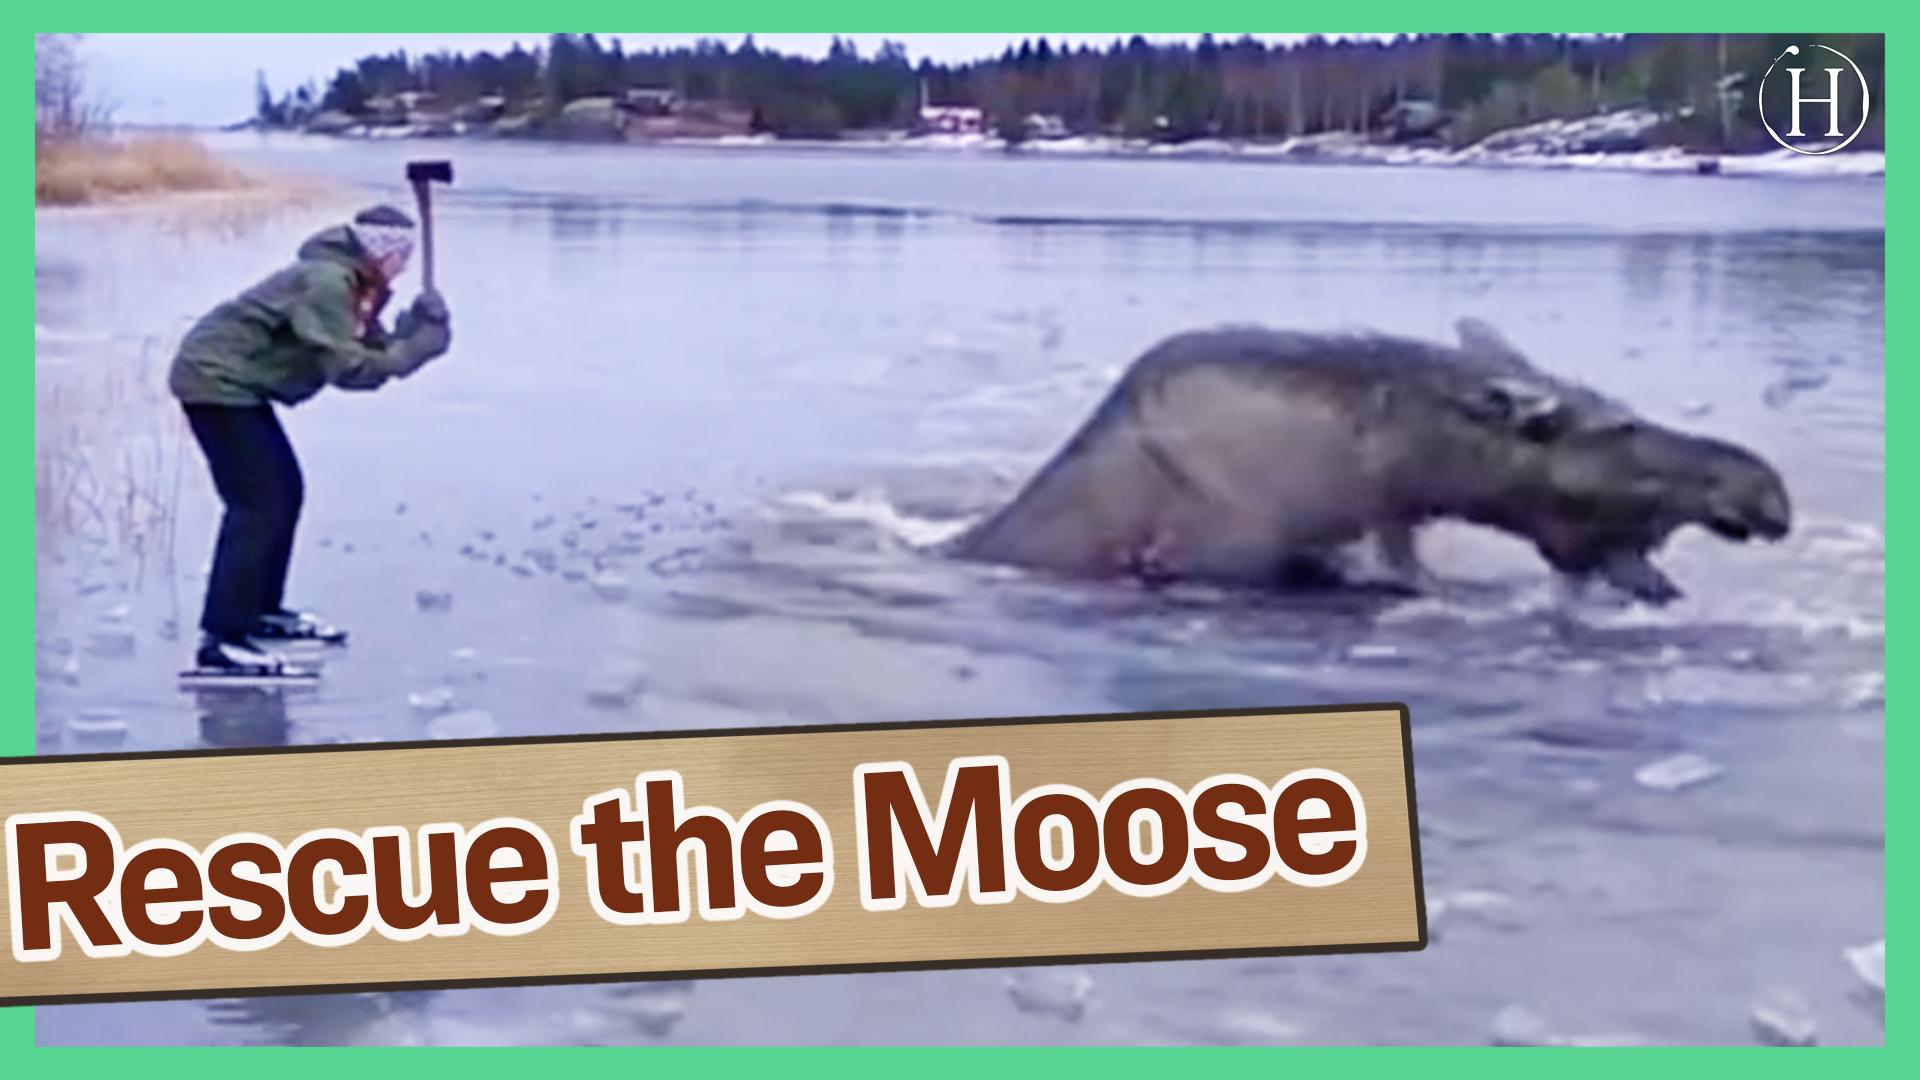 Saving a Moose From Drowning In Ice | Humanity Life